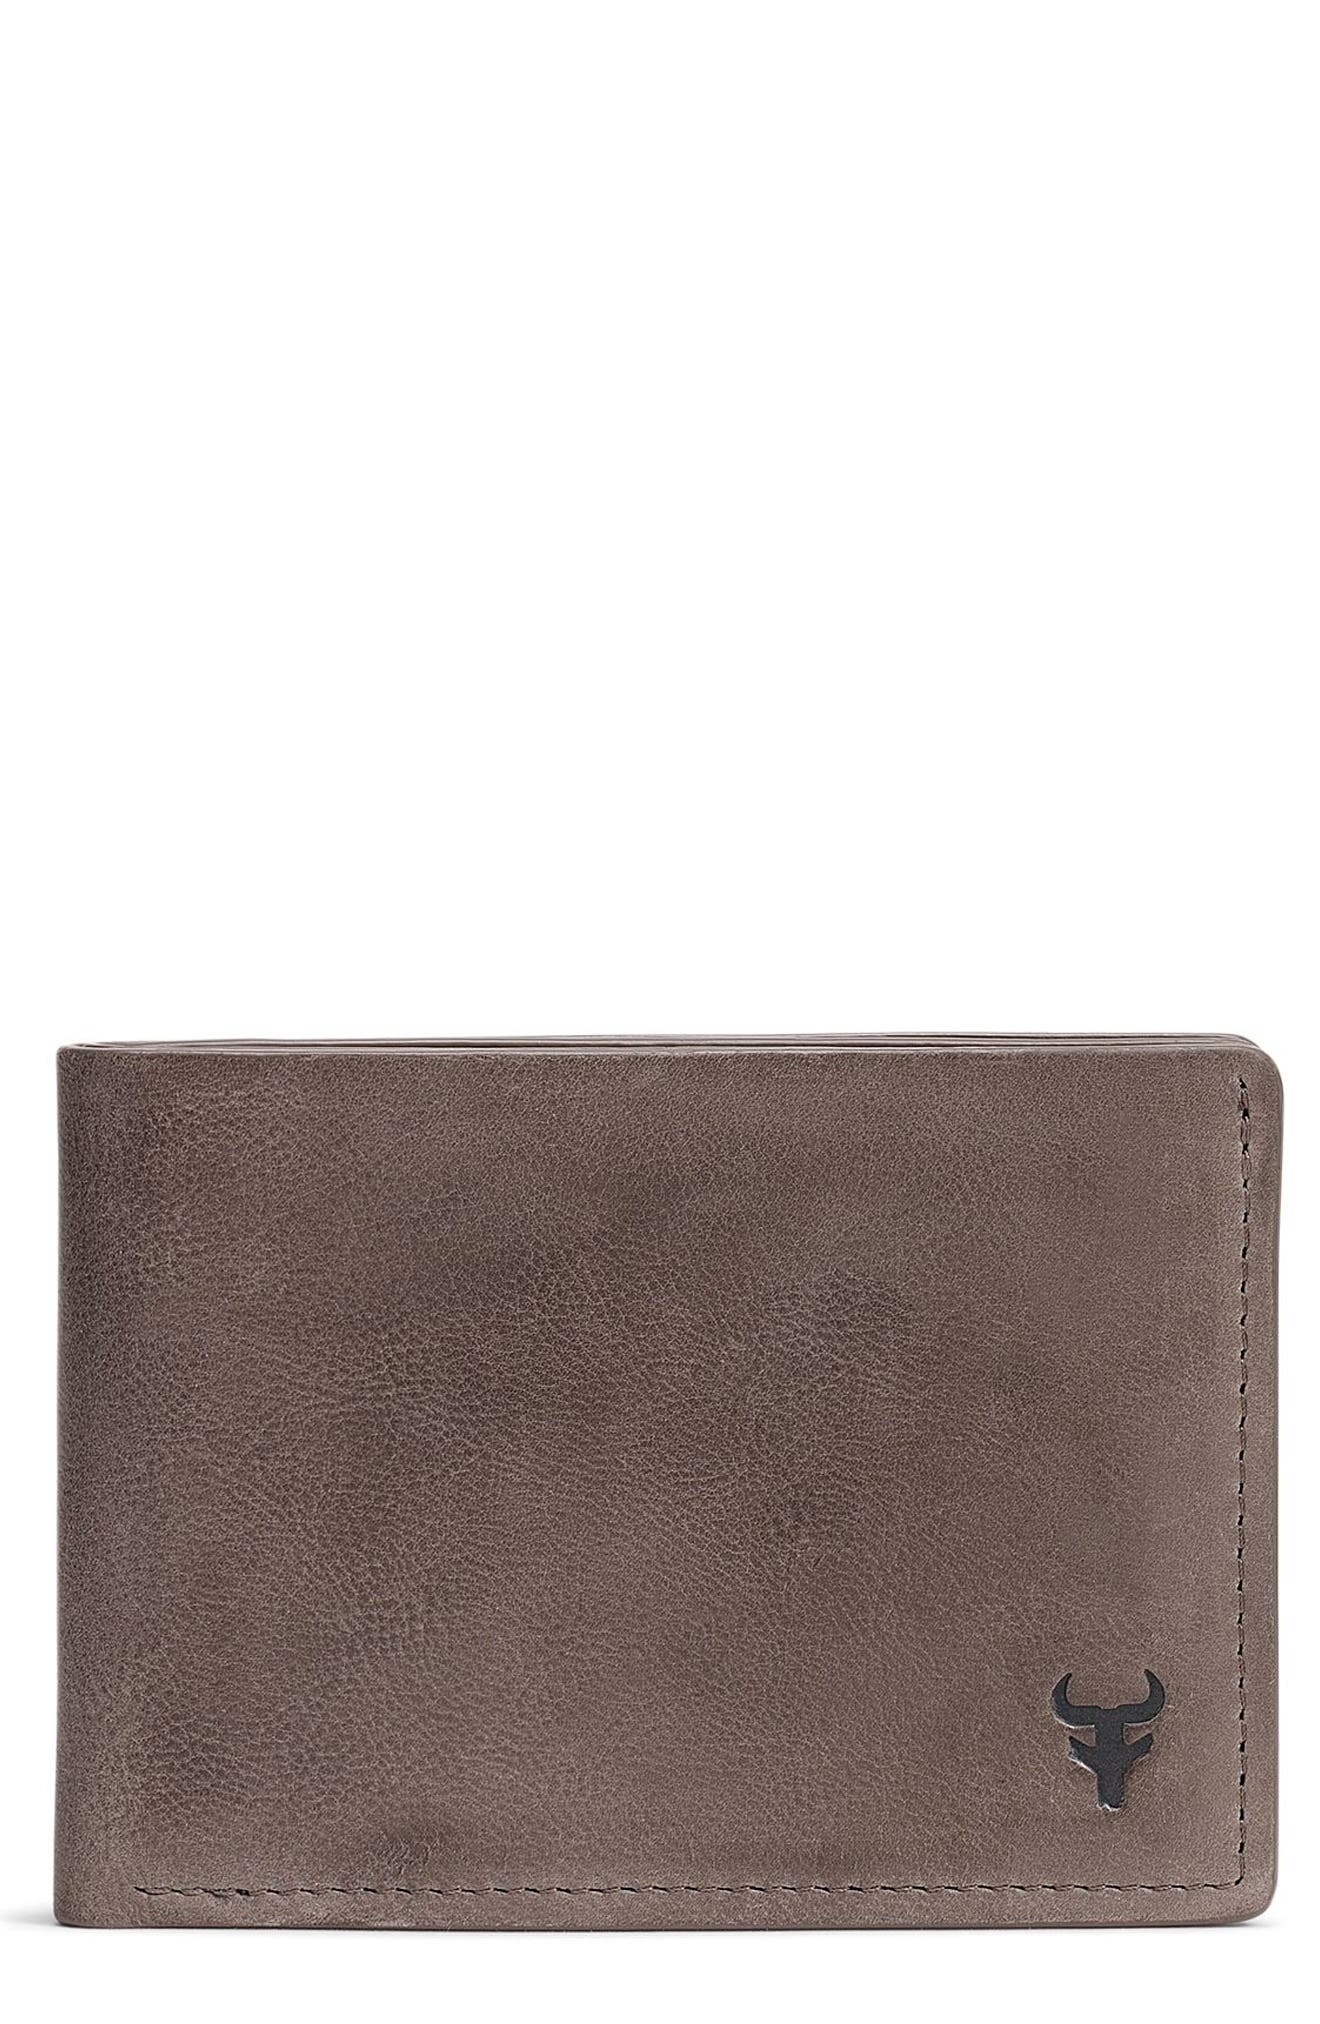 Canyon Super Slim Leather Wallet,                             Main thumbnail 1, color,                             GREY